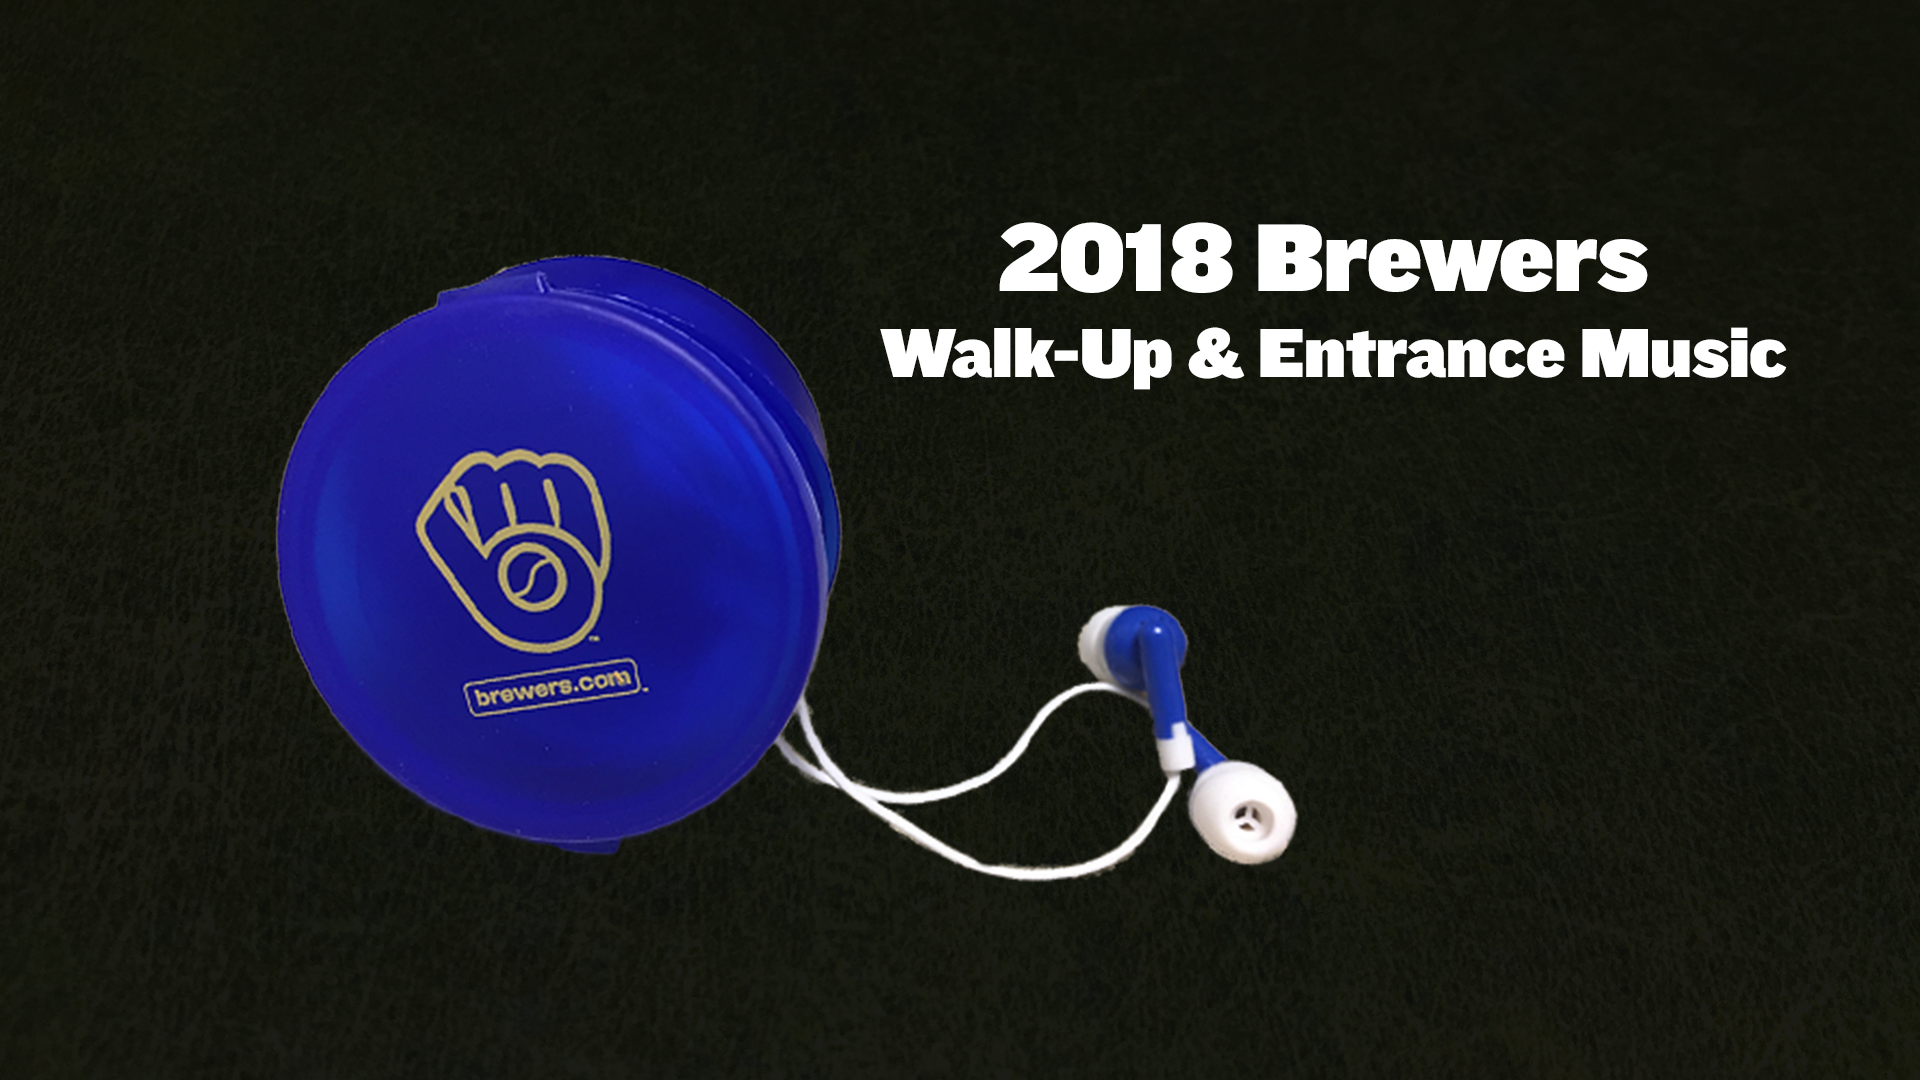 2018 Brewers At Bat & Walk-Up Music - Cait Covers the Bases